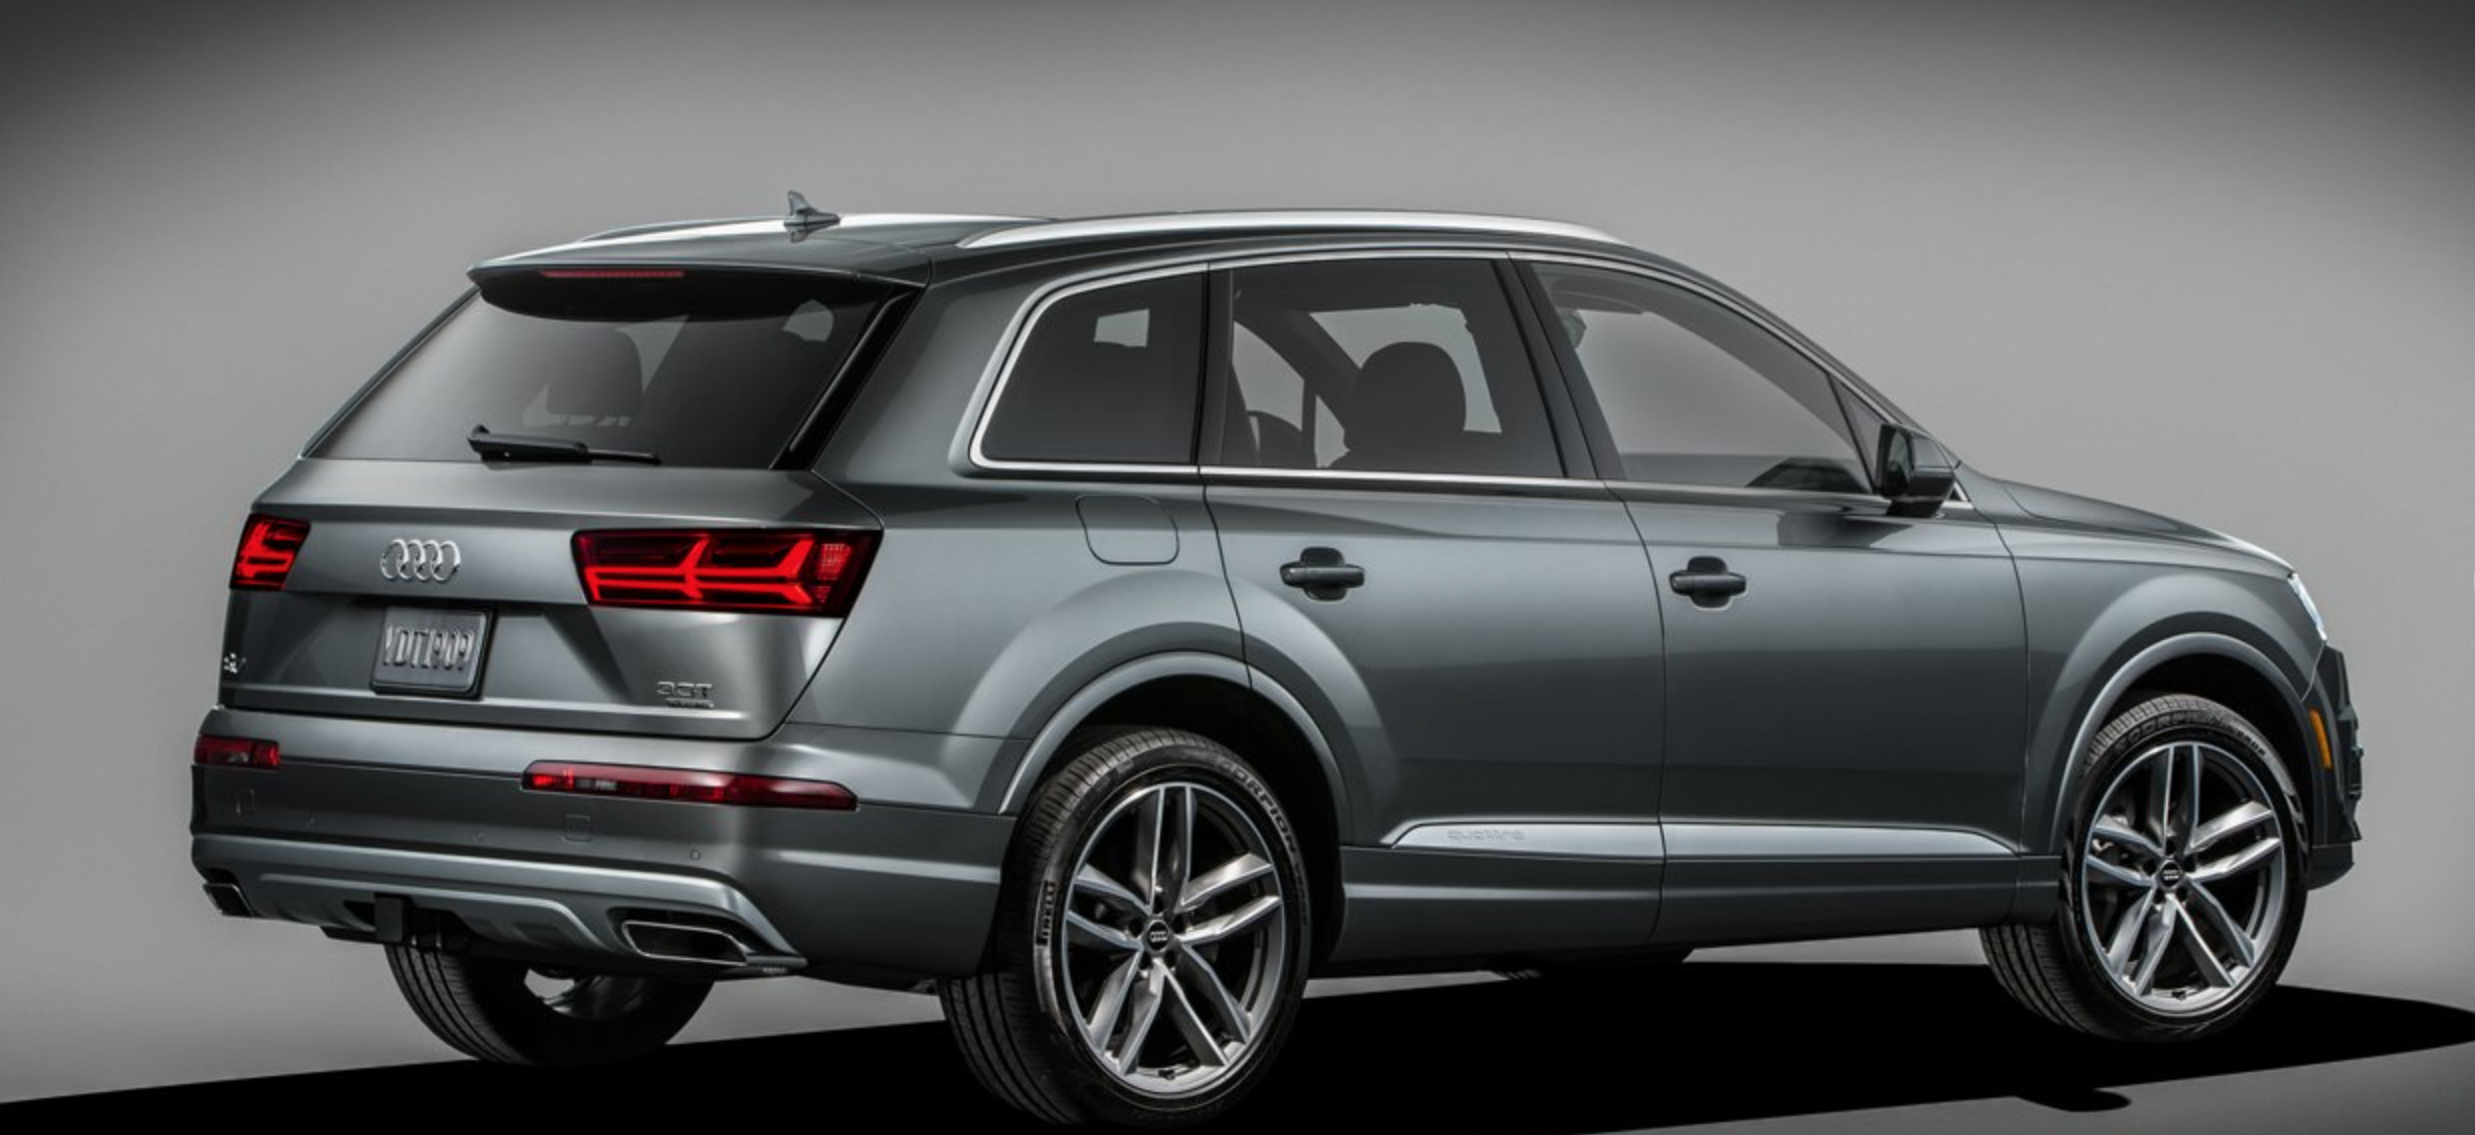 As Customer Preference Shifts From Large Suv S To Crossover Audi Delivers The 2017 Q7 After Several Years Of Innovative Designing